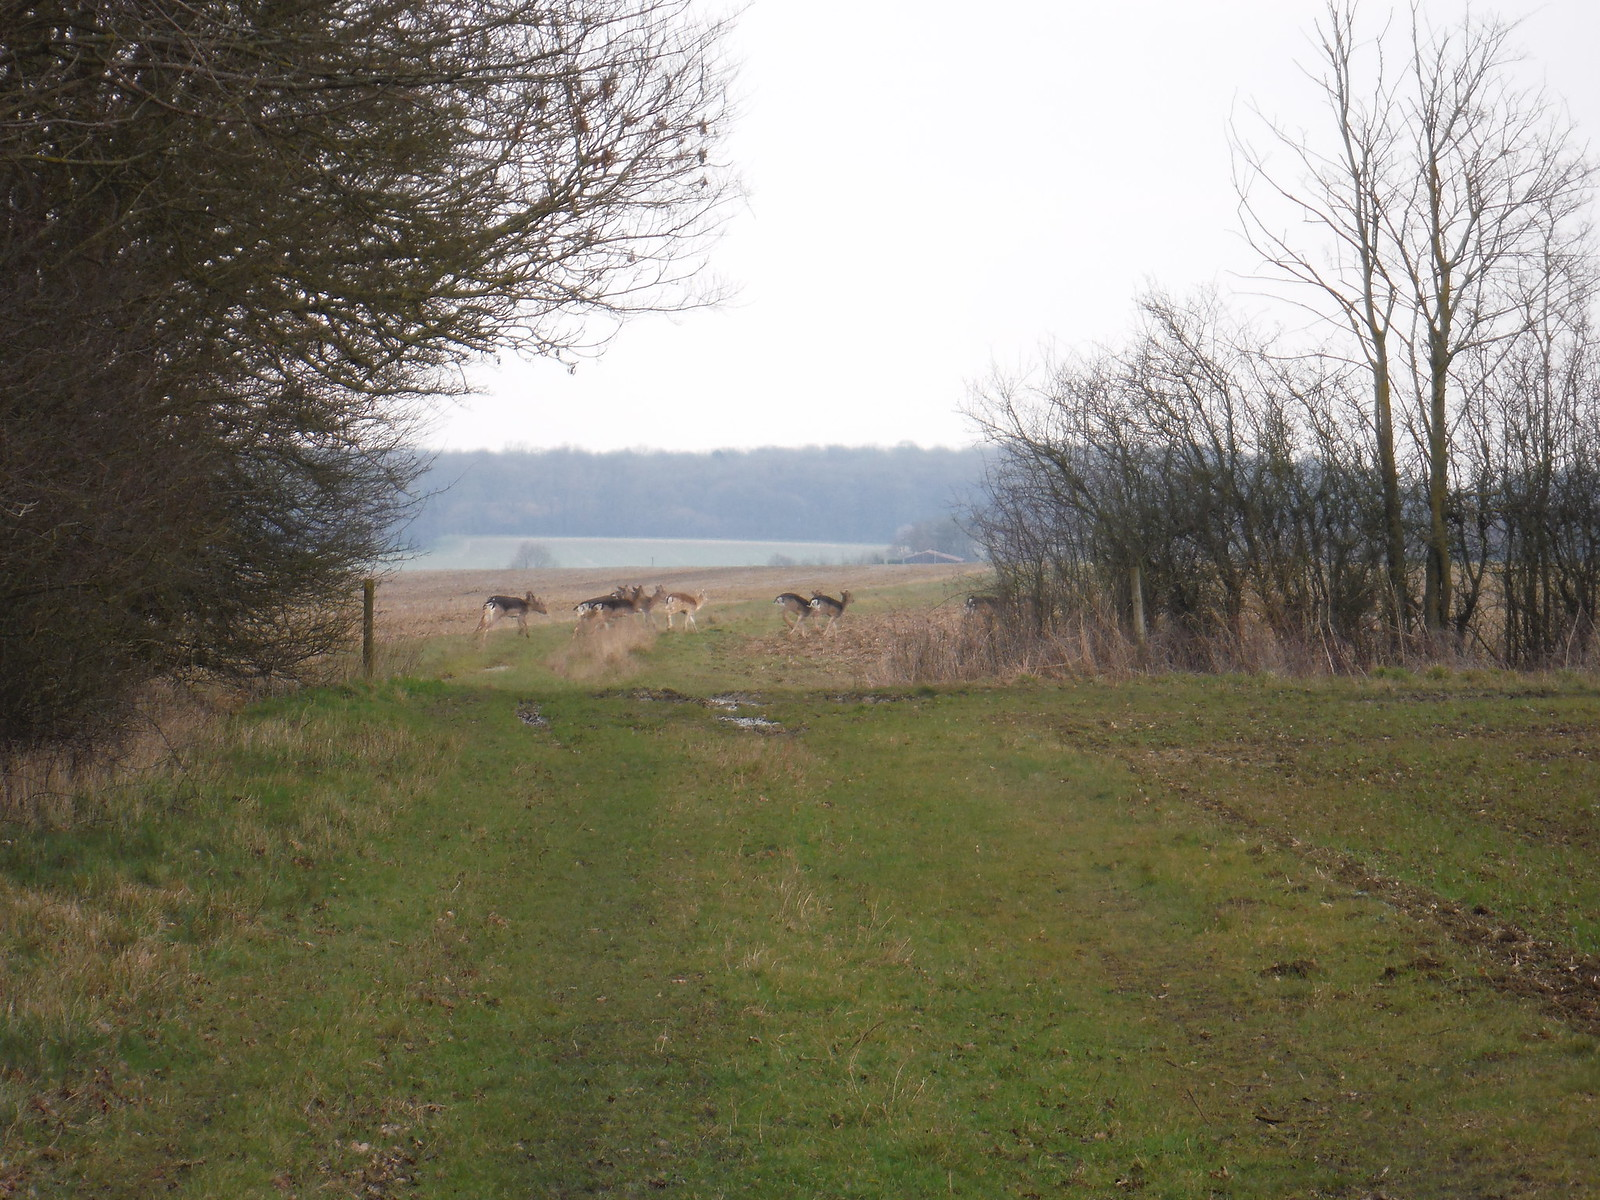 Deer en route to Chiswick Hall SWC Walk 116 Wendens Ambo [Audley End station] Circular (Extension)